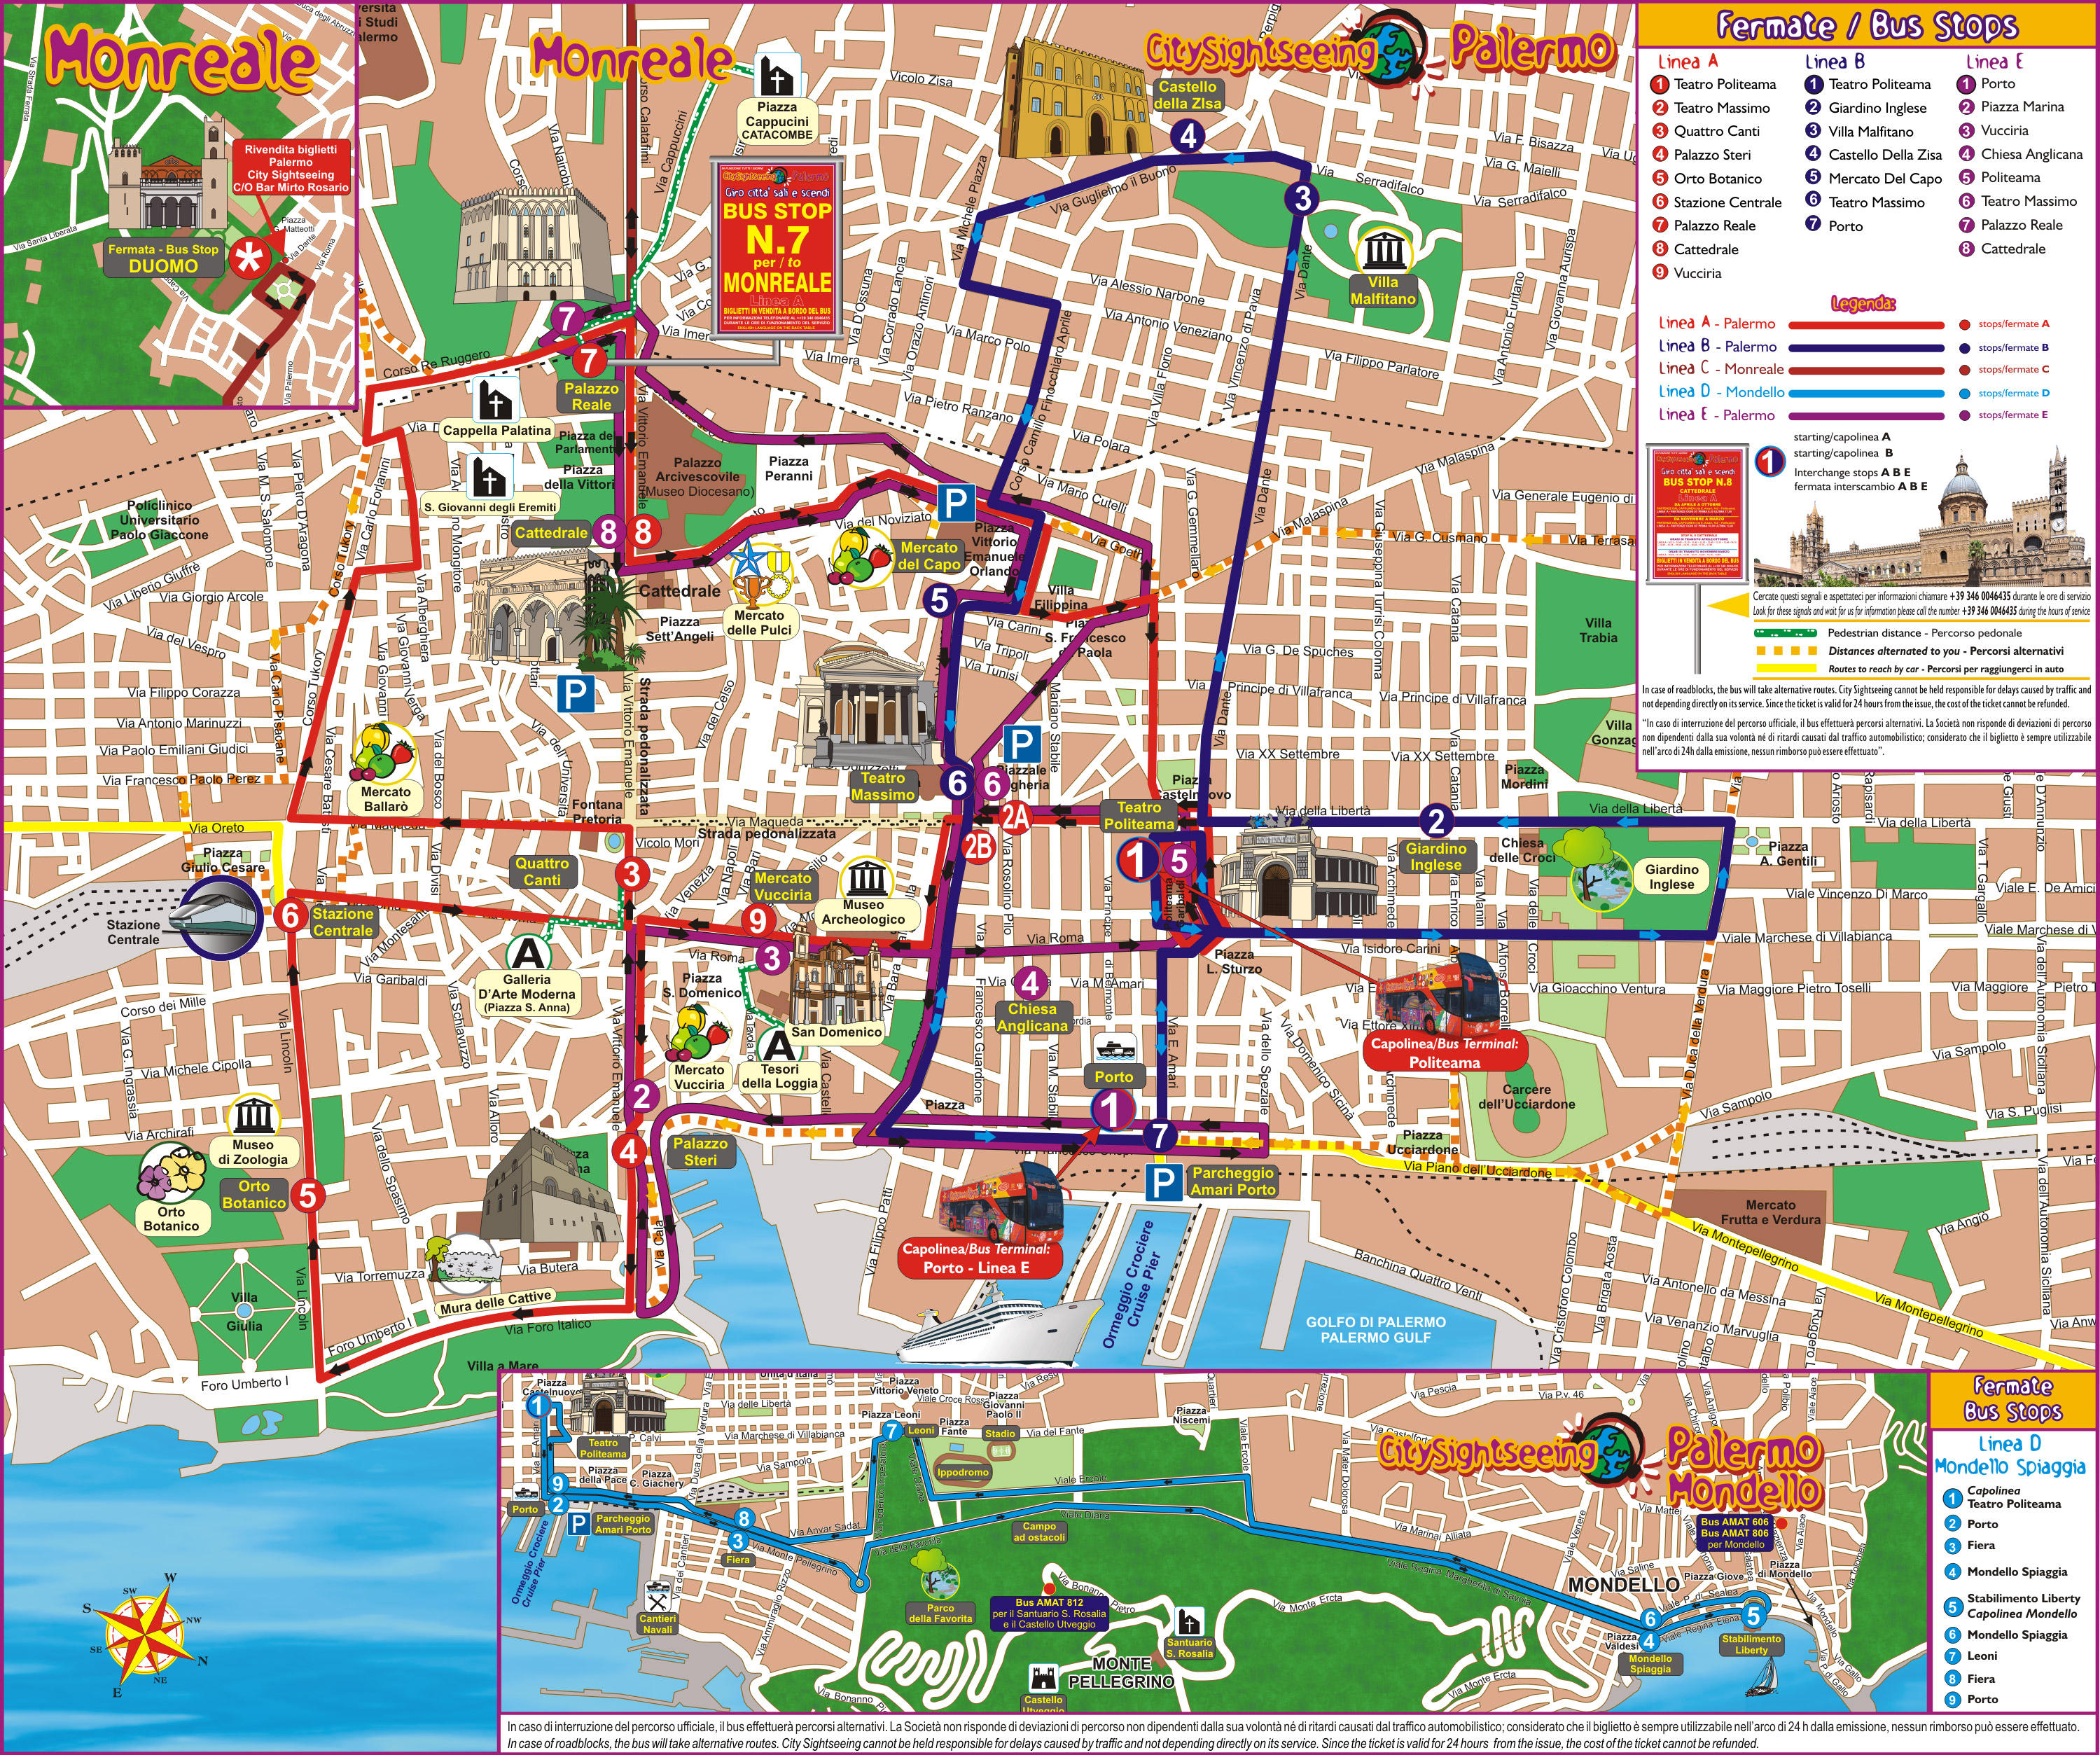 Map of Palermo City Hop-on Hop-off Tour